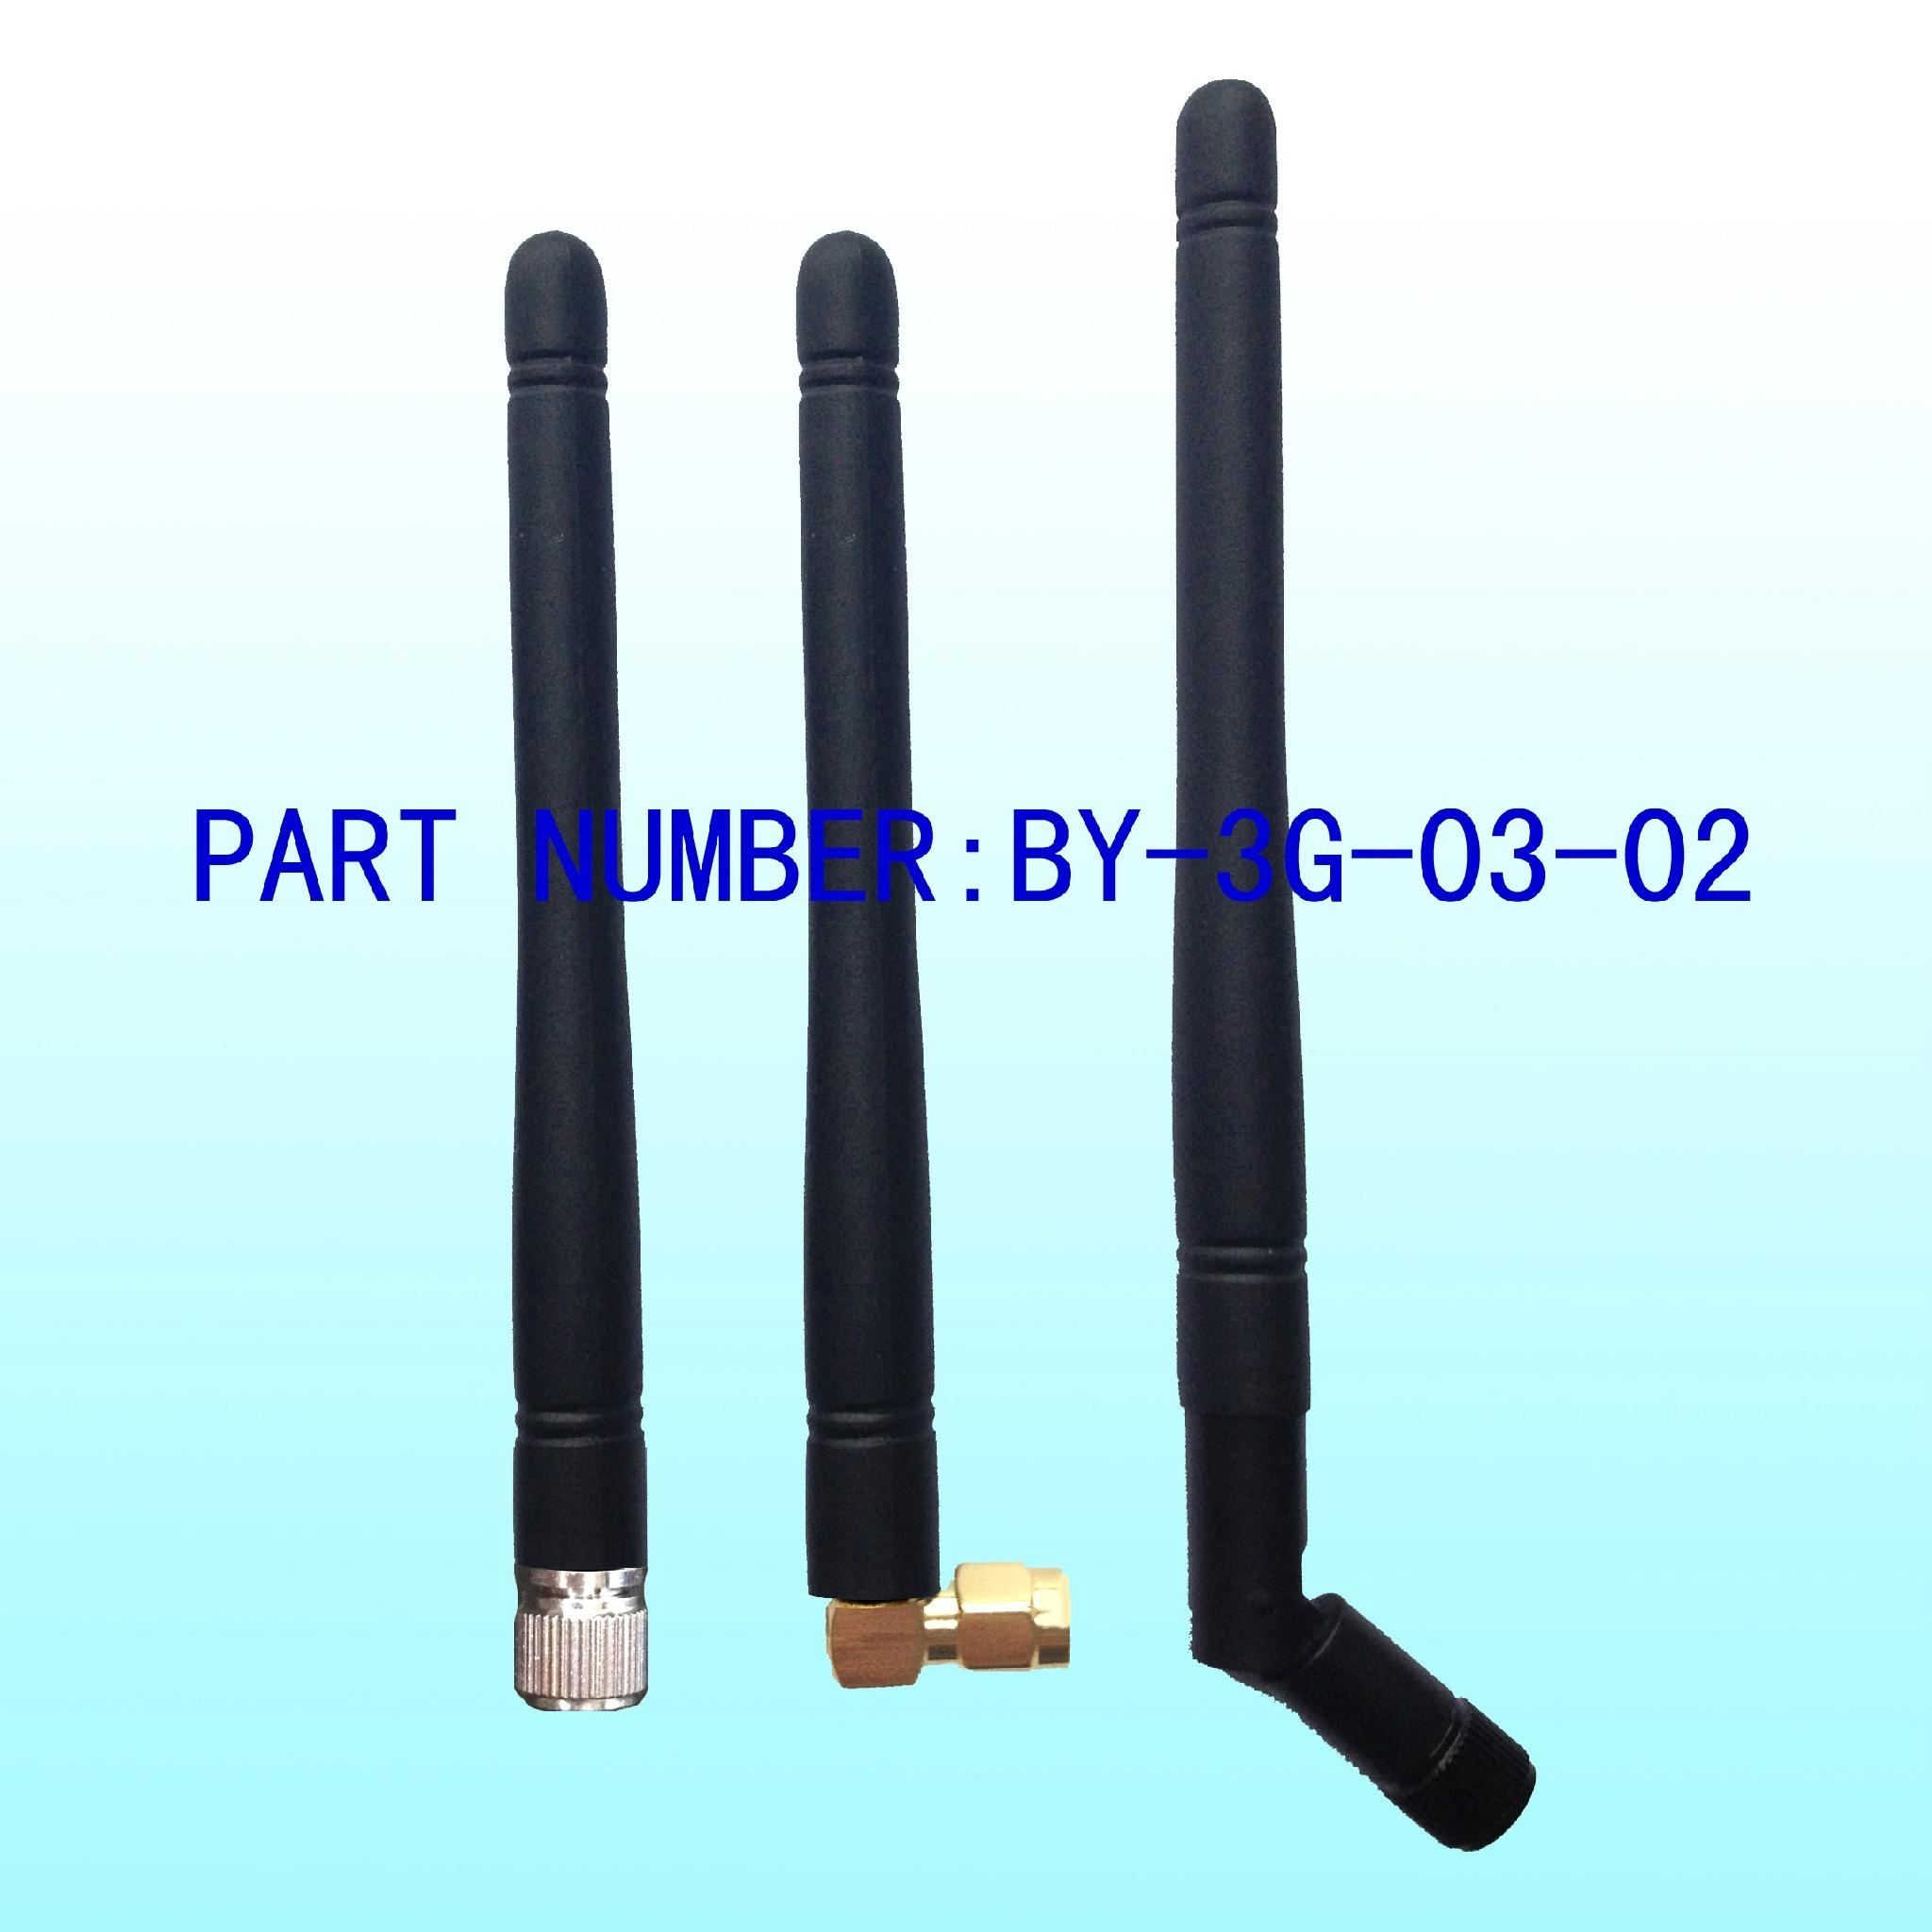 3G Rubber 3dBi Antenna for Radio Communication